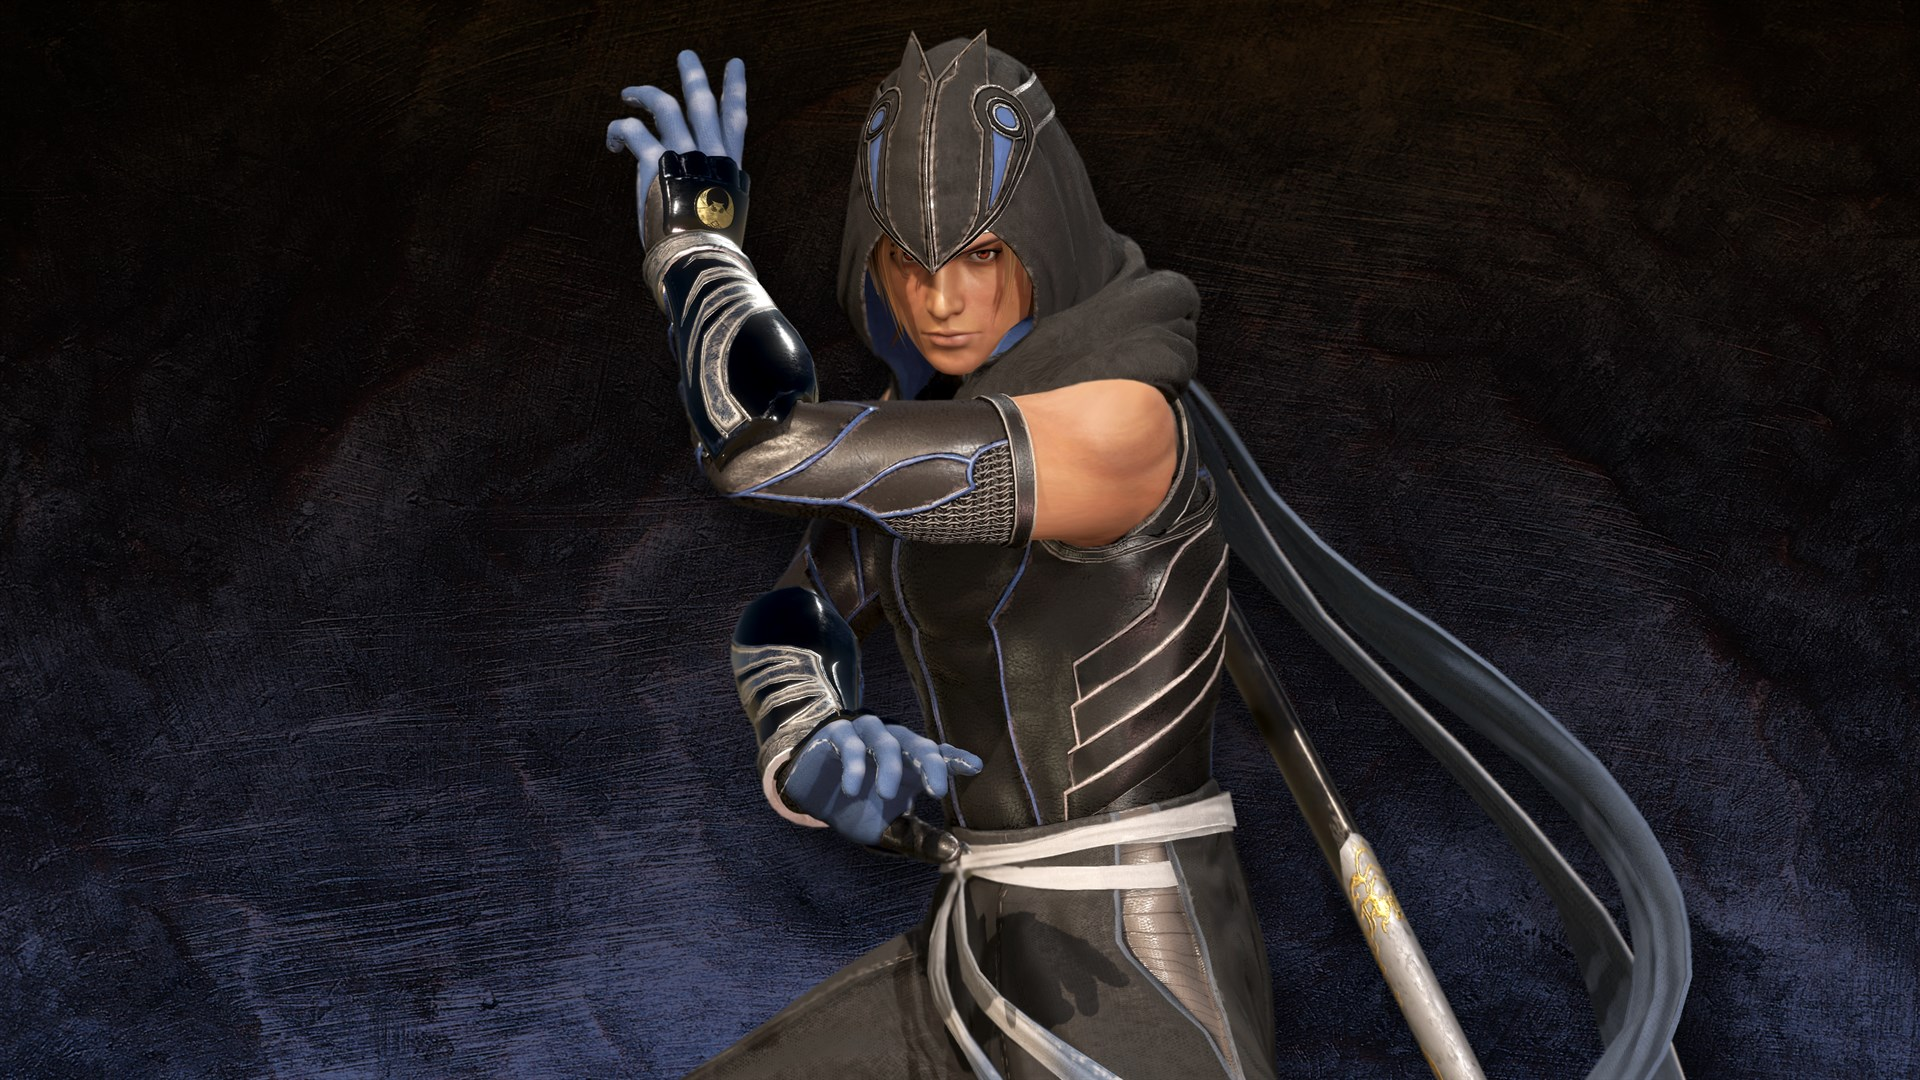 DEAD OR ALIVE 6: Core Fighters キャラクター使用権 「ハヤテ」